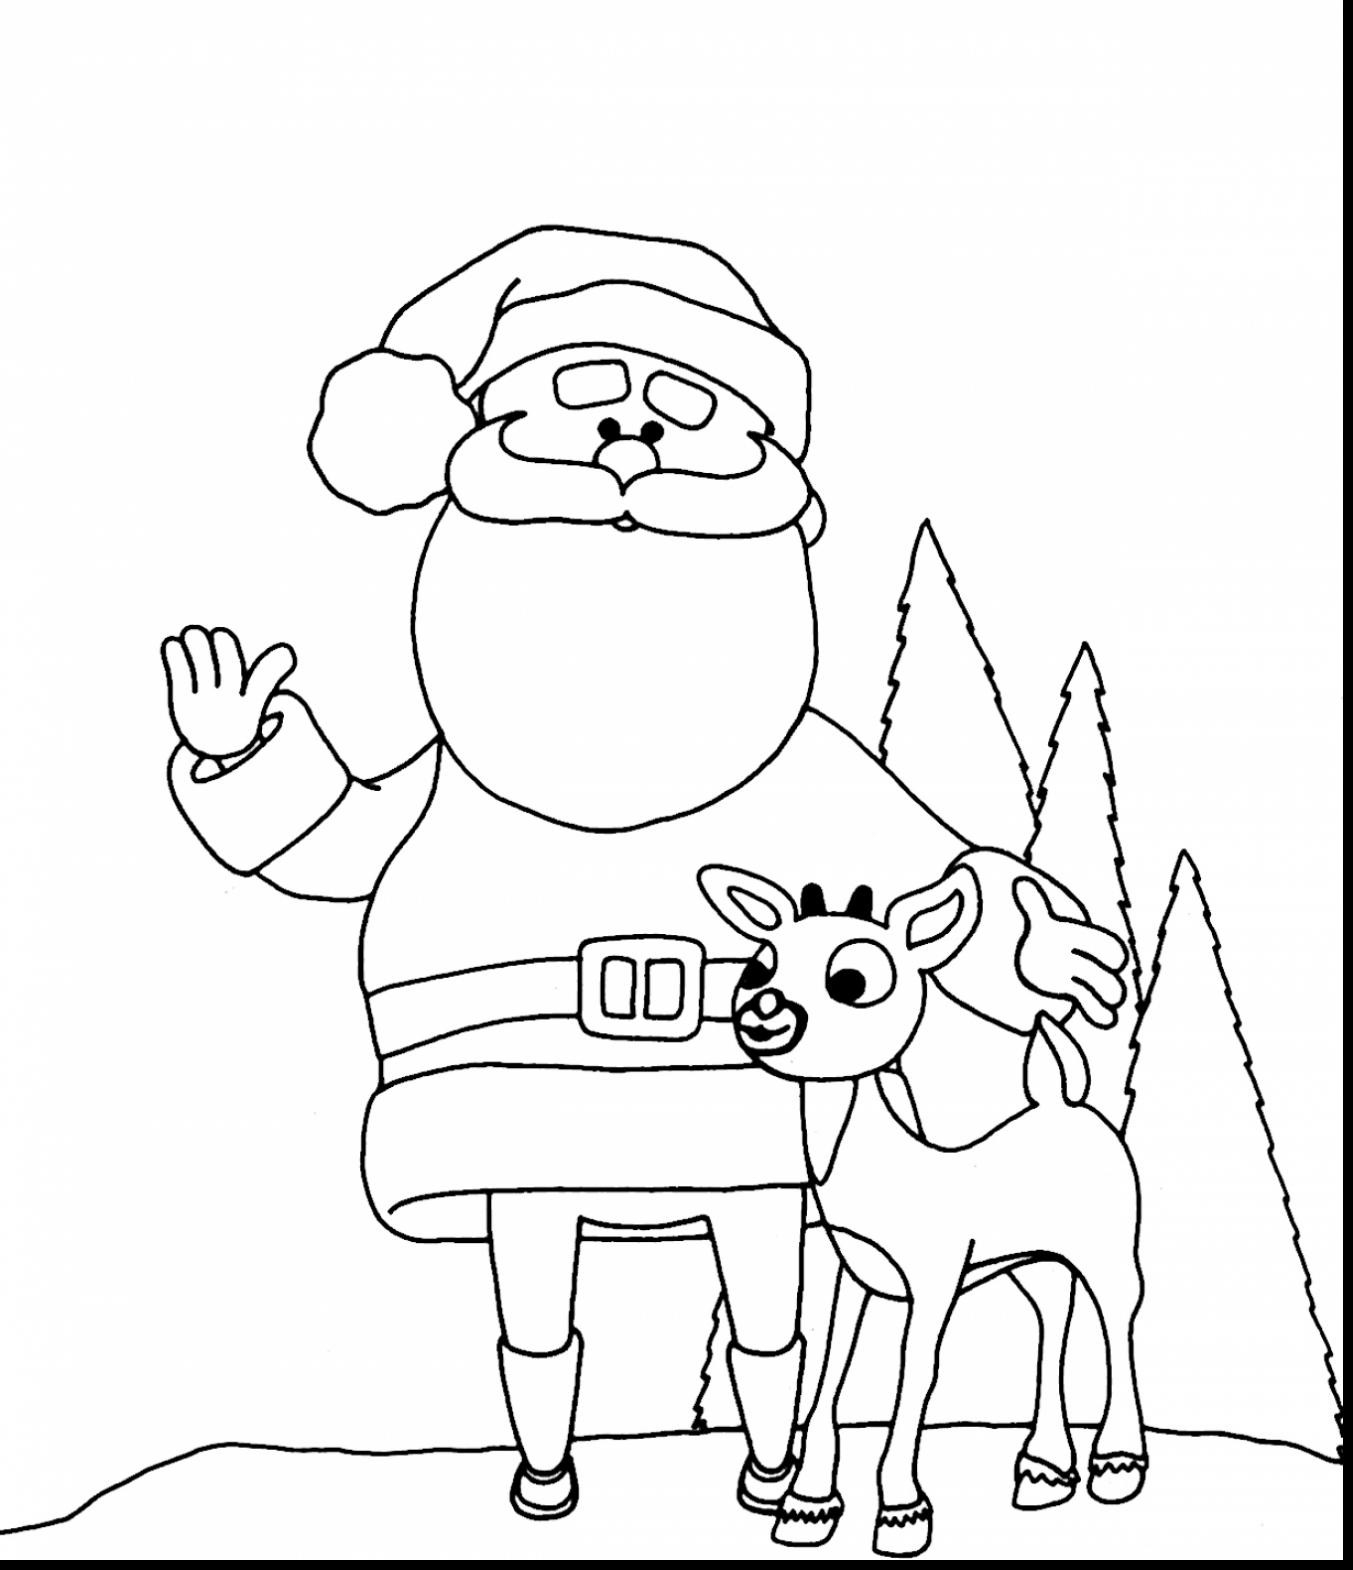 Santa And Reindeer Coloring Pictures With Rudolph The Red Nosed Pages To Print Free